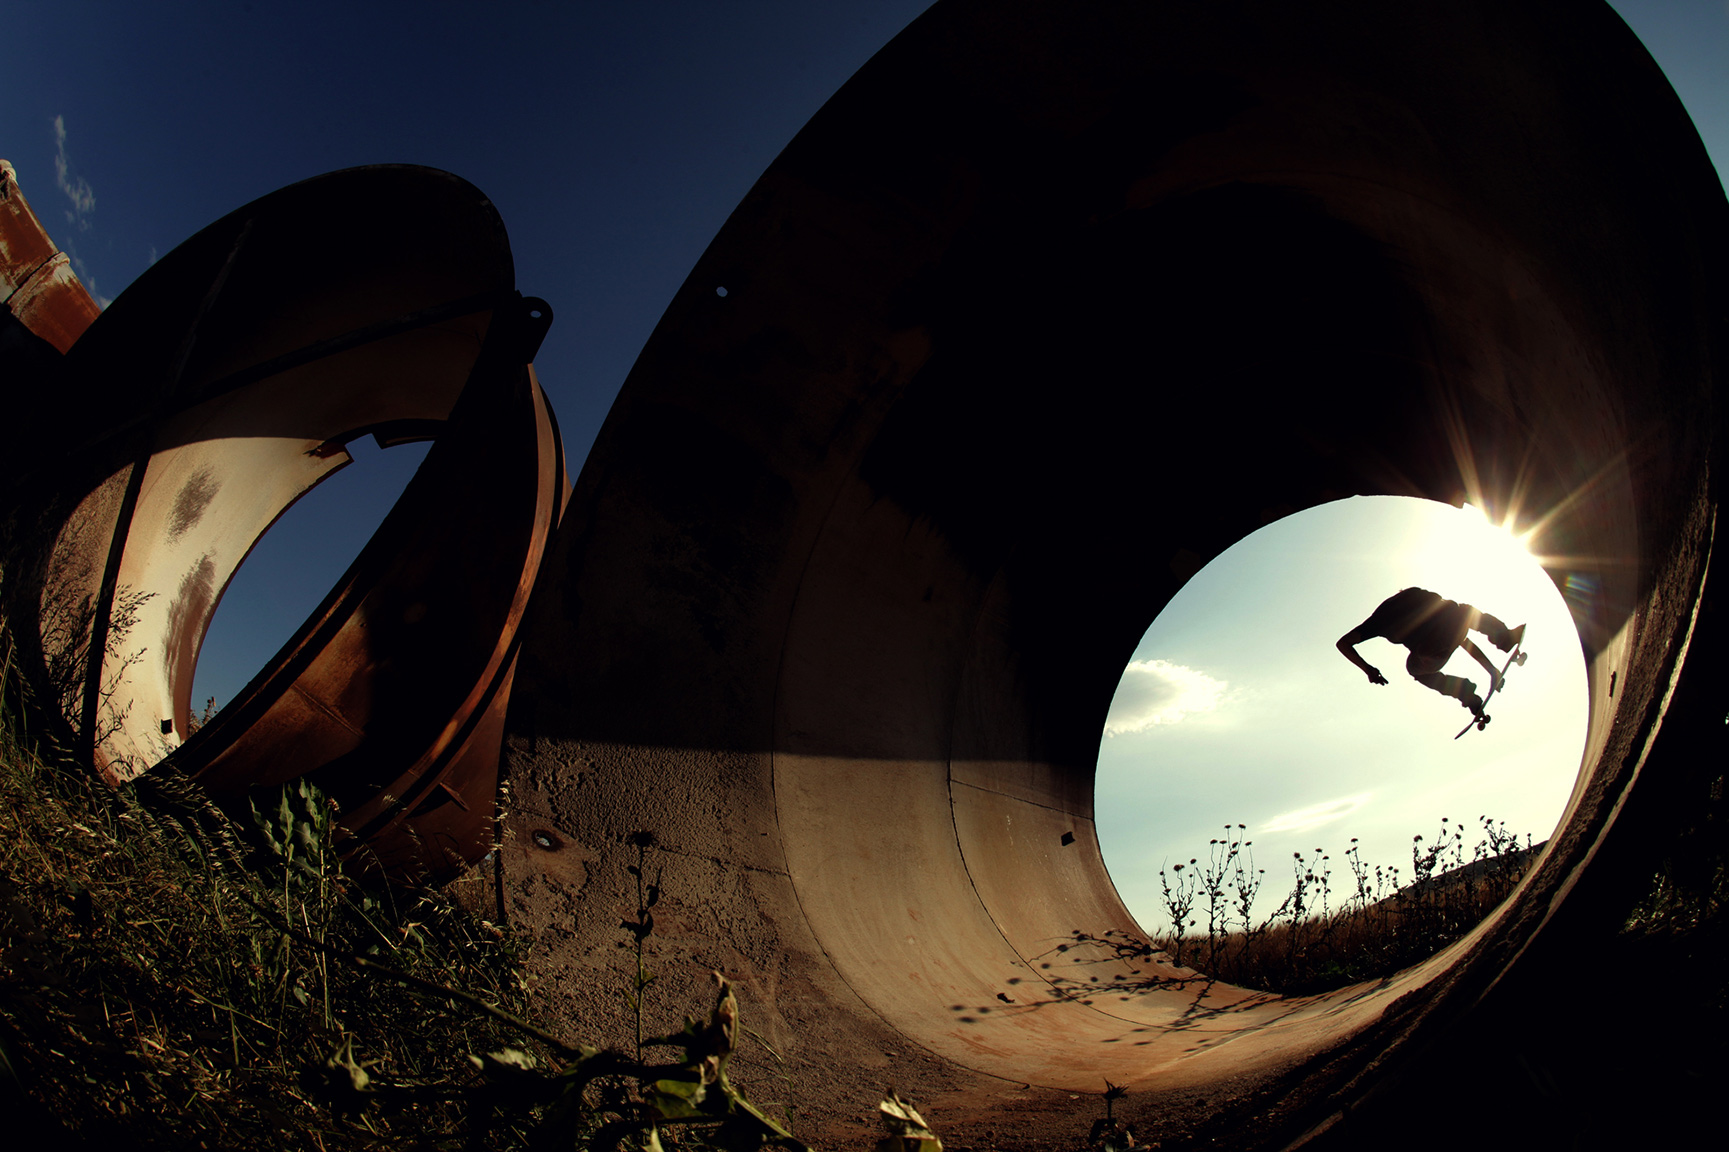 Chris Loupis, frontside 180, Thiva, Greece. This photo's got some really cool kind of fisheye effect. It's got the light -- the way the sun flare is coming through the edge of the pipe is really cool. There's nothing glam about it at all. It's core. -- Alex Hillinger